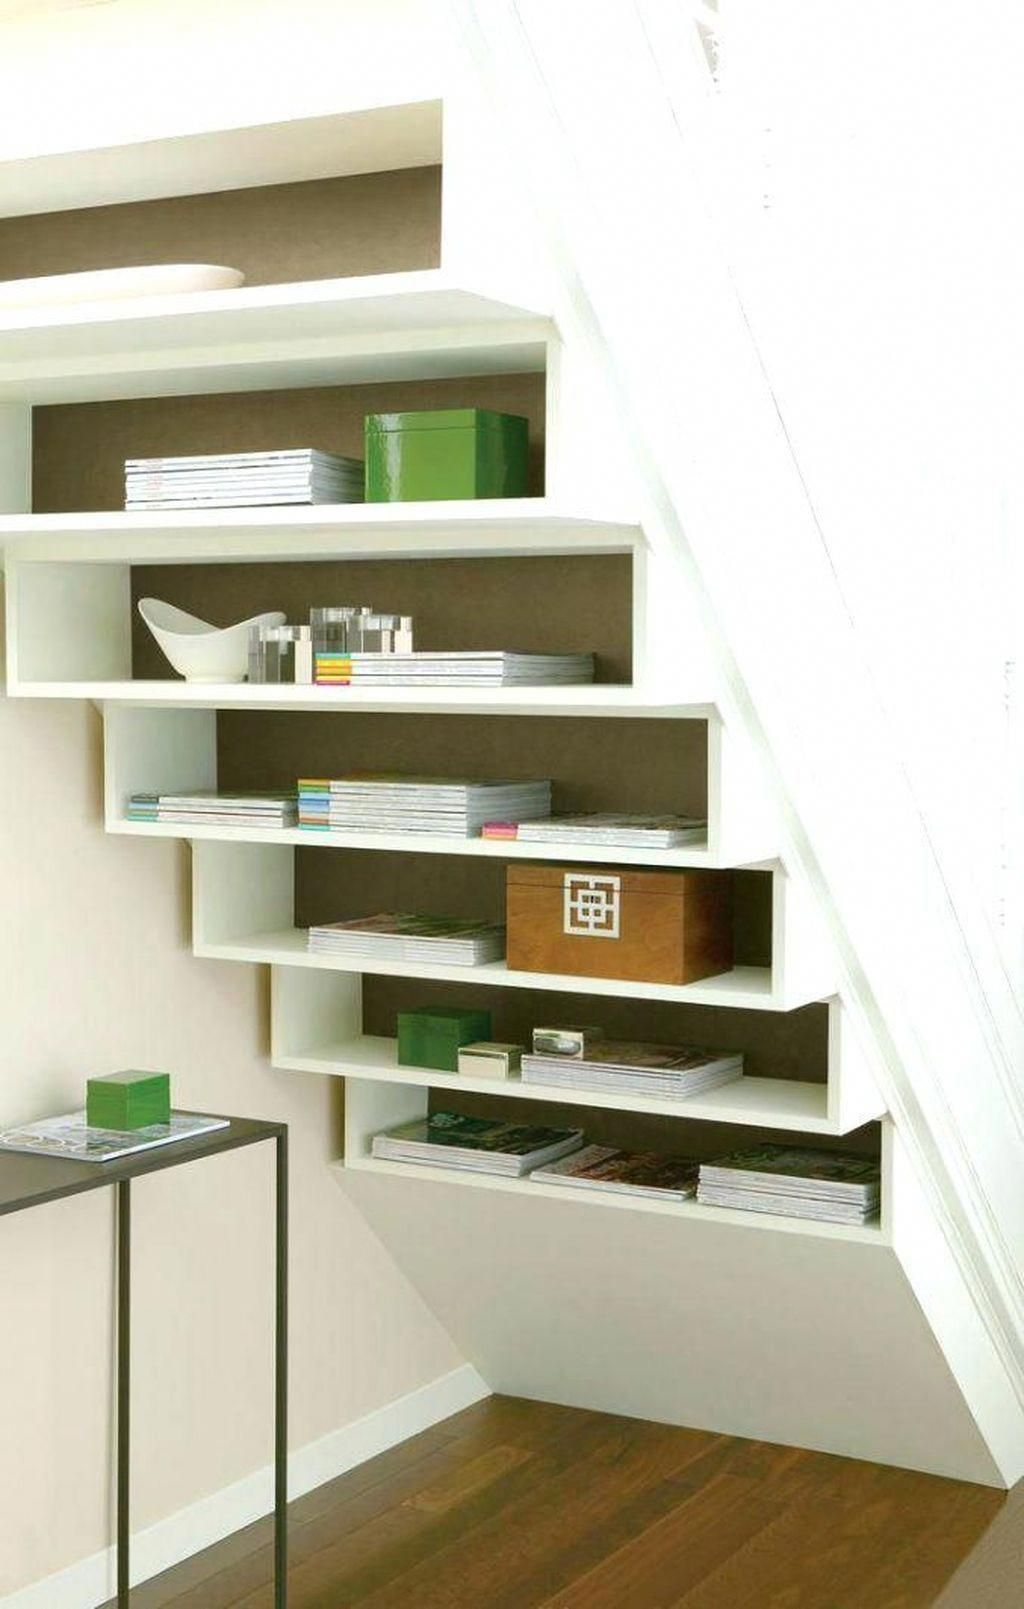 16 Genius Organization Ideas To Make The Most Out Of Your Space In